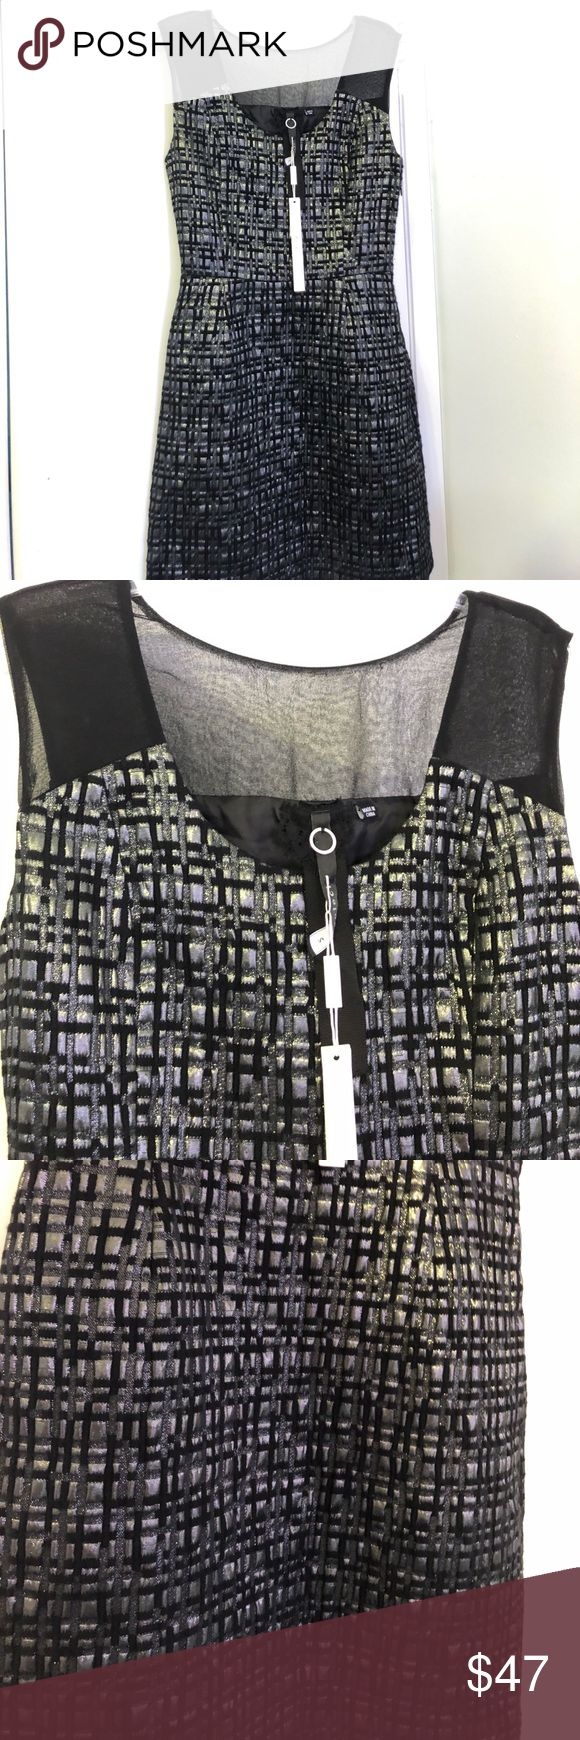 NWT Poleci Black Metallic Sheath Cocktail Dress Brand new!!! Amazing jacquard material. Metallic silk print. Black with sparkle and shimmer. Black silk panel contrast. Sleeveless. Great for the office or after work party. Poleci Dresses